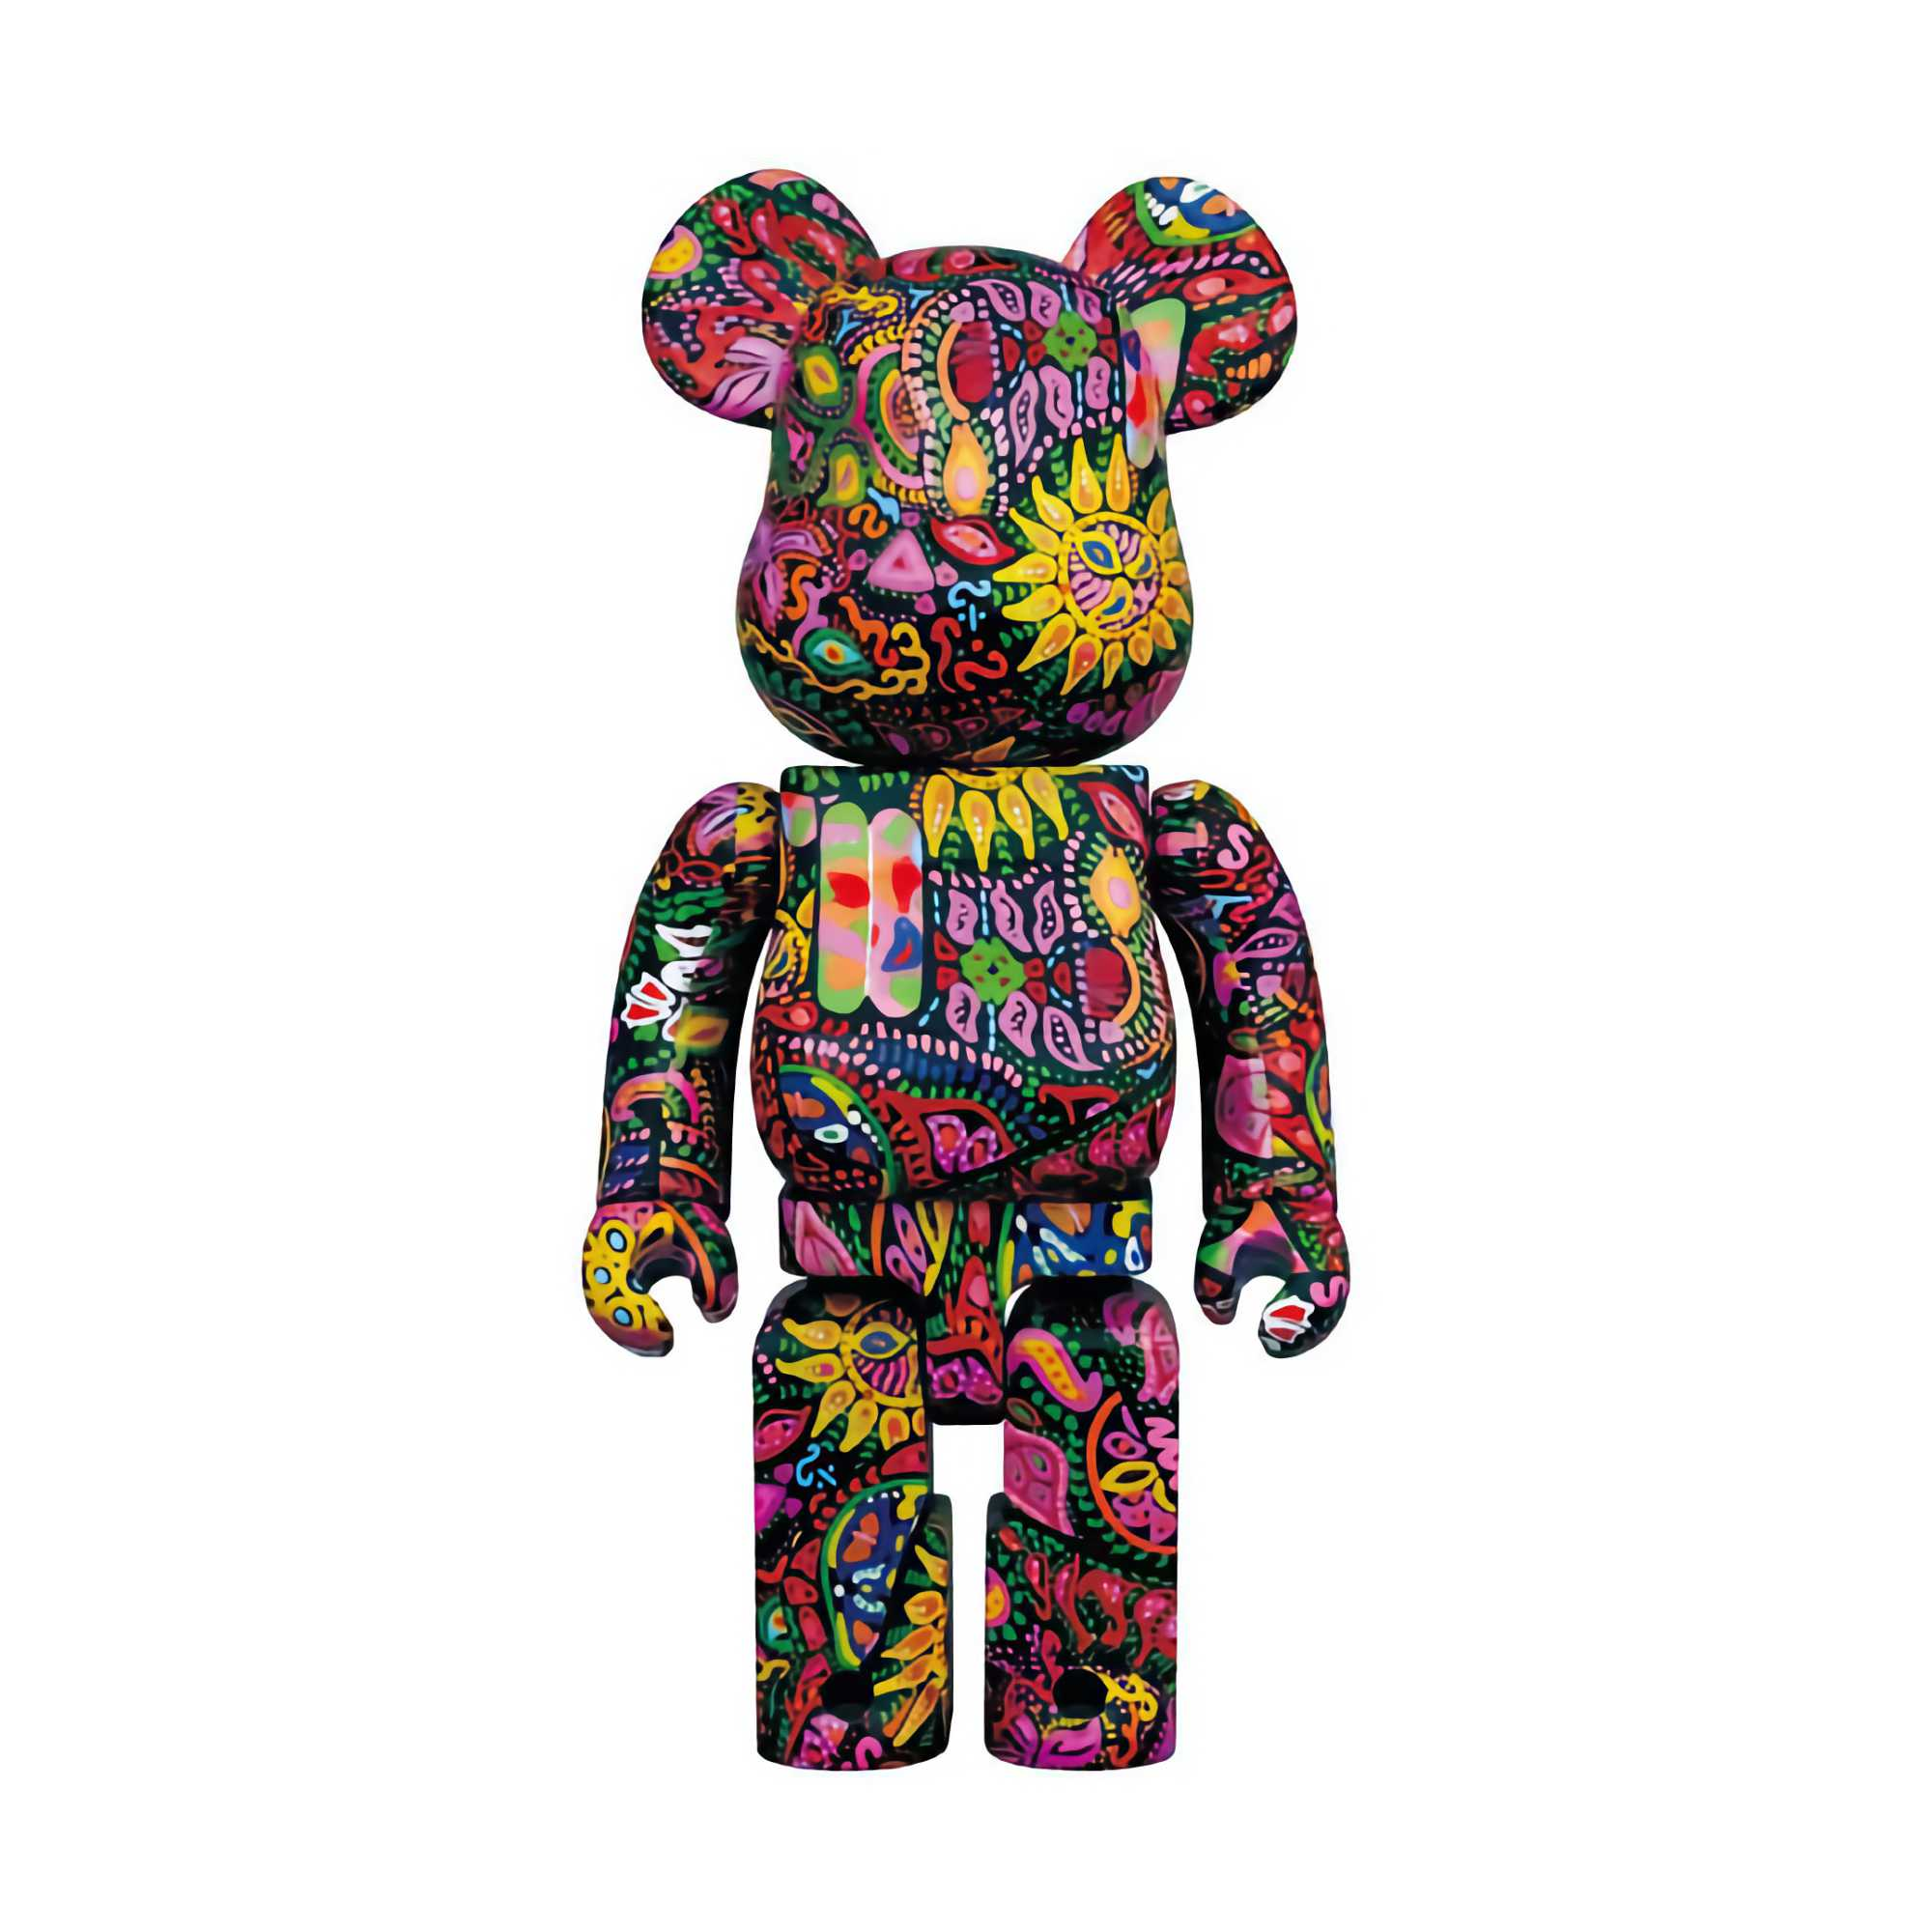 Paladone Marvel Spider-Man Figurine Desk Lamp